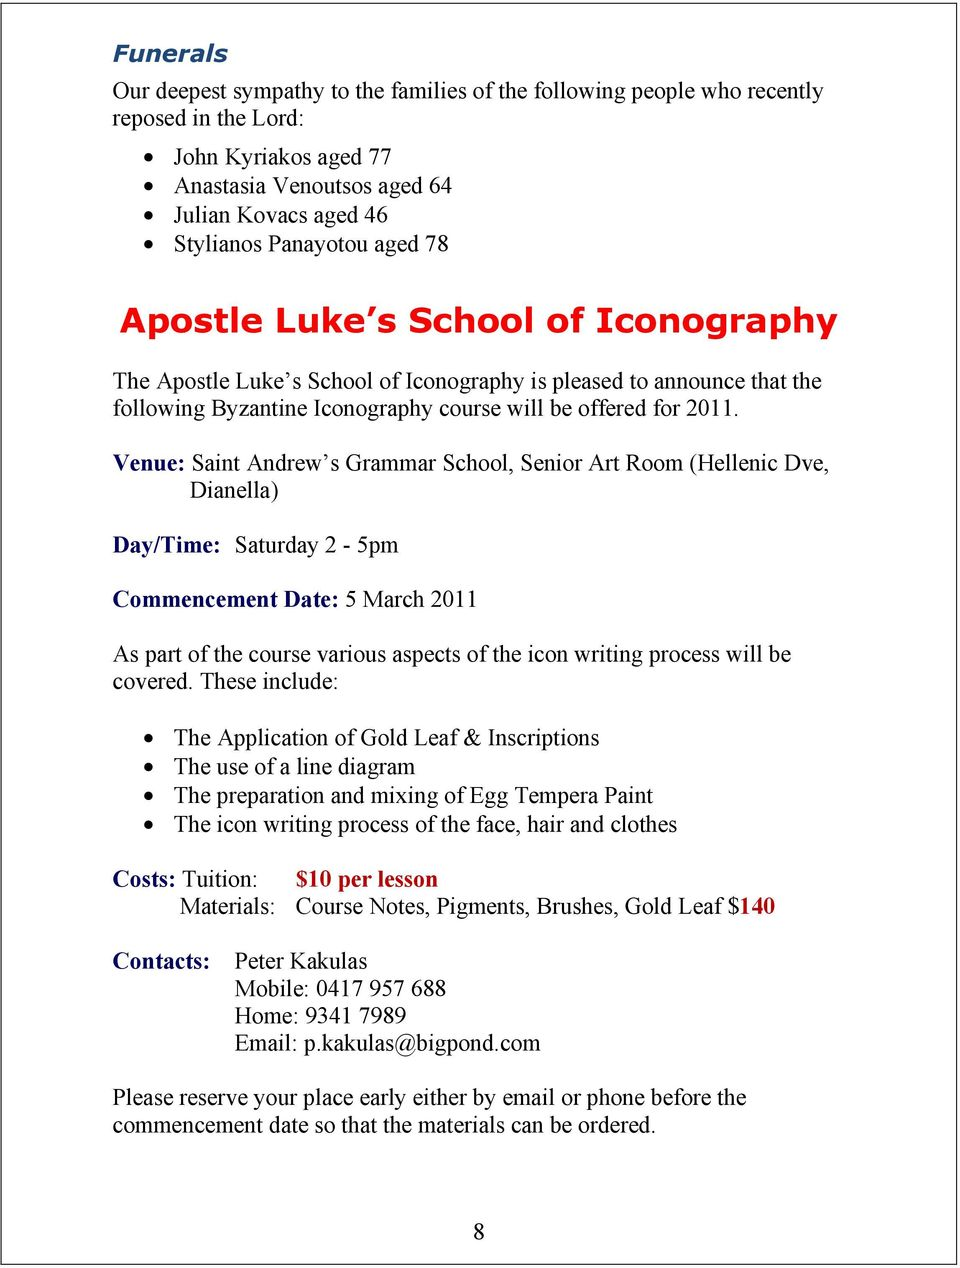 Venue: Saint Andrew s Grammar School, Senior Art Room (Hellenic Dve, Dianella) Day/Time: Saturday 2-5pm Commencement Date: 5 March 2011 As part of the course various aspects of the icon writing